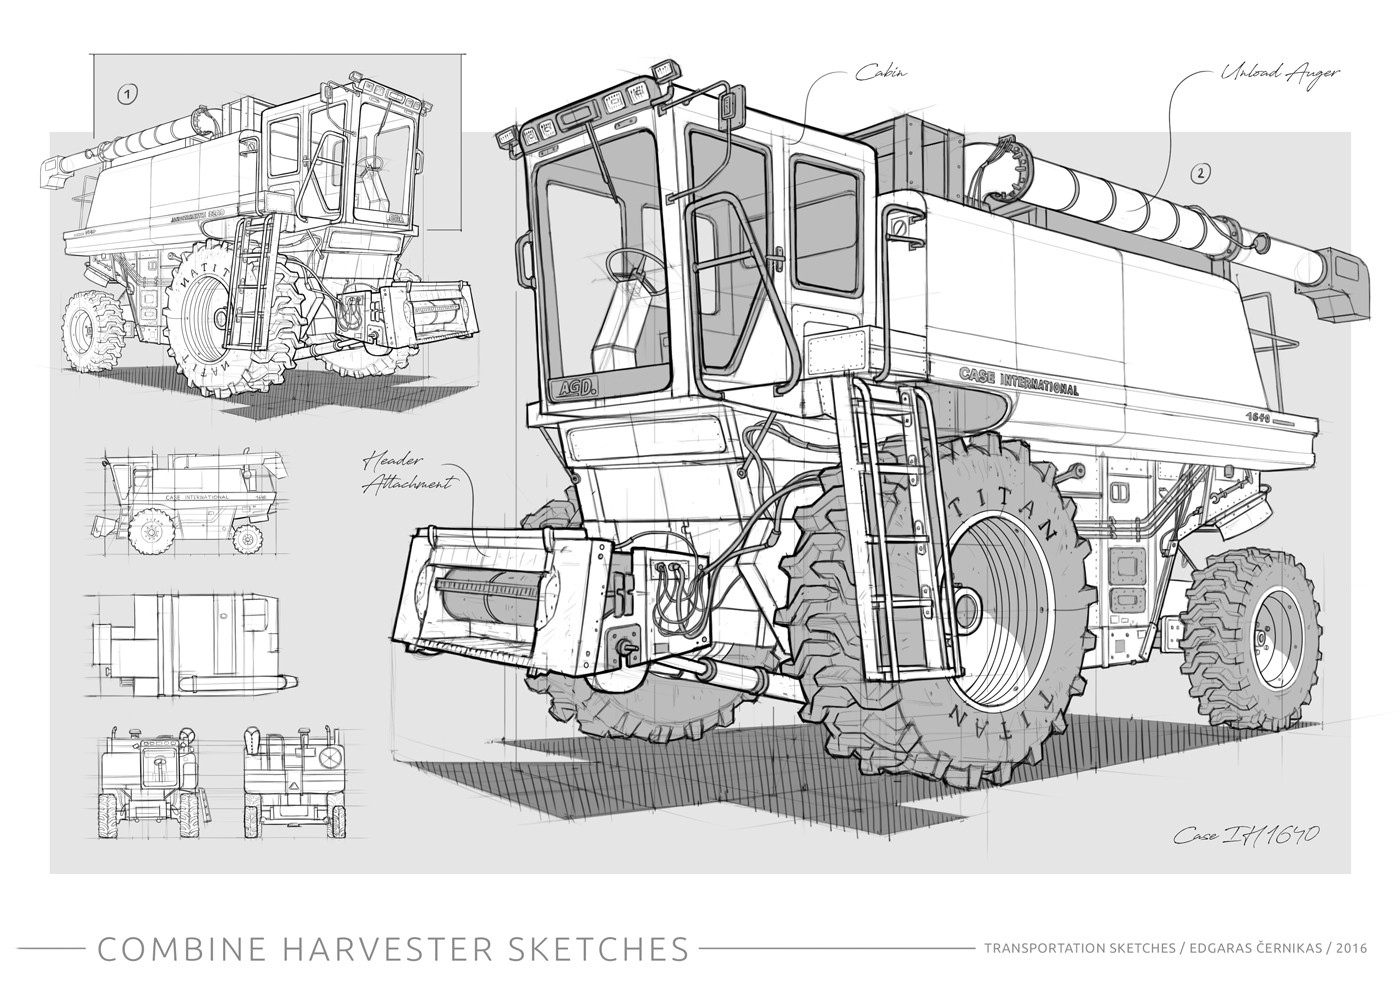 Edgaras cernikas transportation sketches combine harvester 1400x990